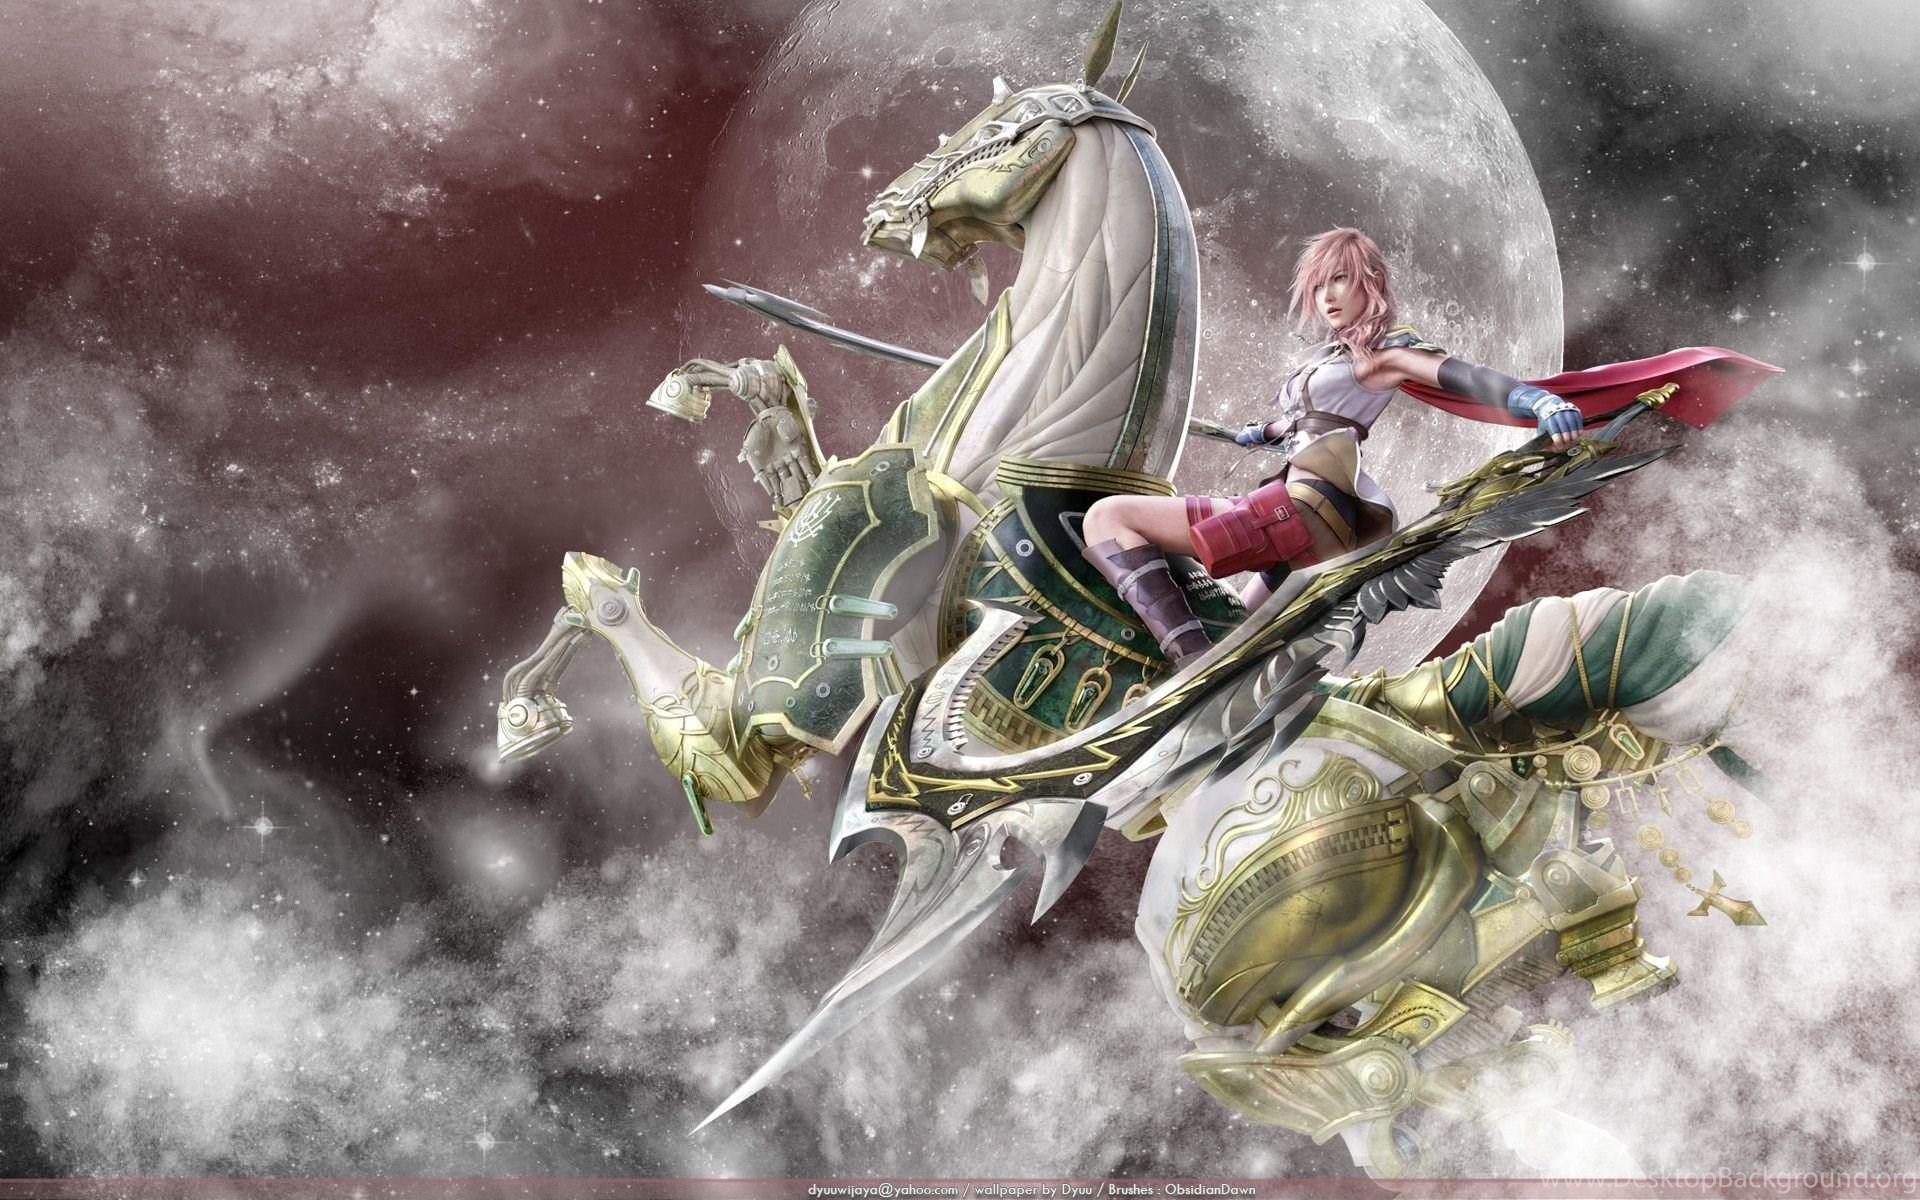 Horse Wallpapers Final Fantasy Xiii Wallpapers Hd Wallpapers 95817